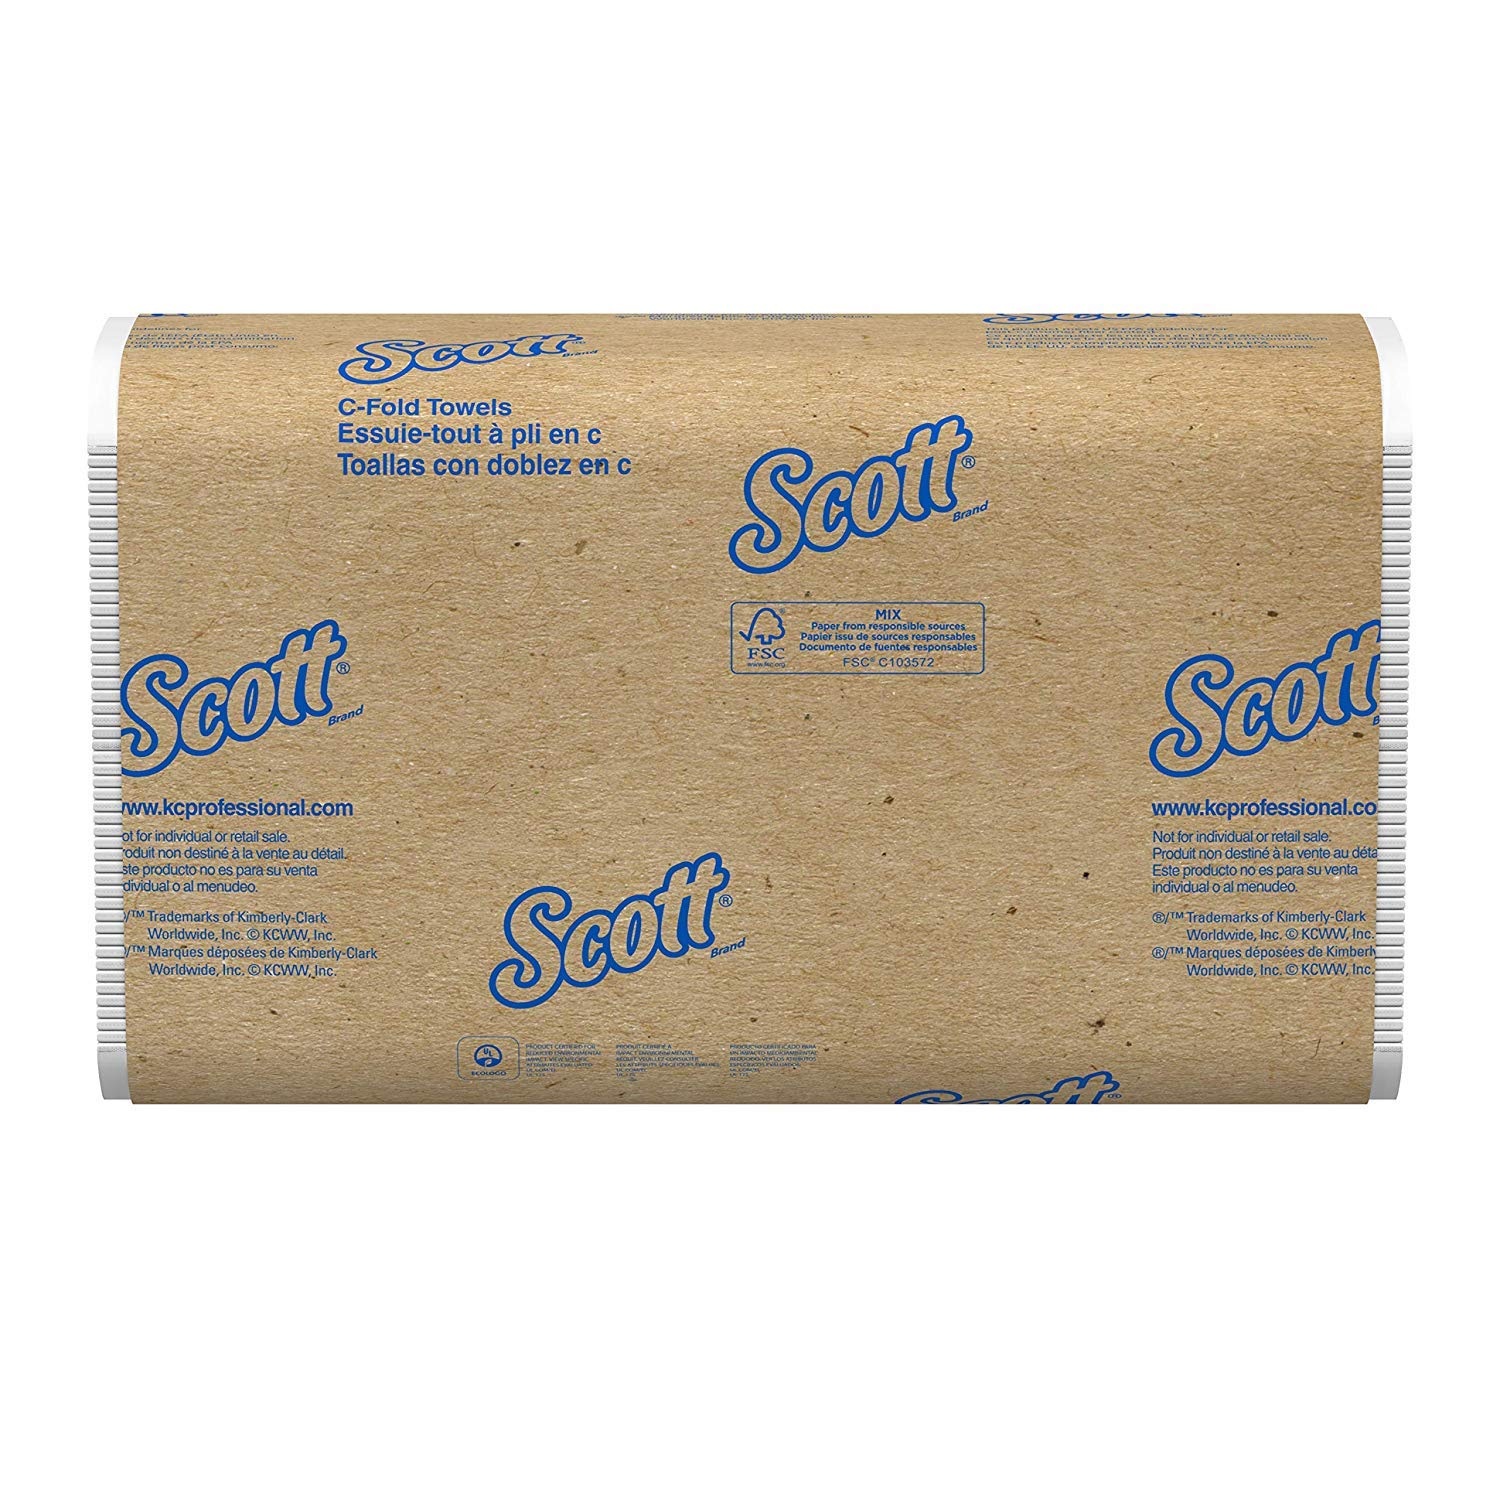 Scott QWVB 03623 C-Fold Paper Towels, Convenience Pack, 10 1/8 x 13 3/20, White, 200 per Pack, 4 Cases of 9 Packs